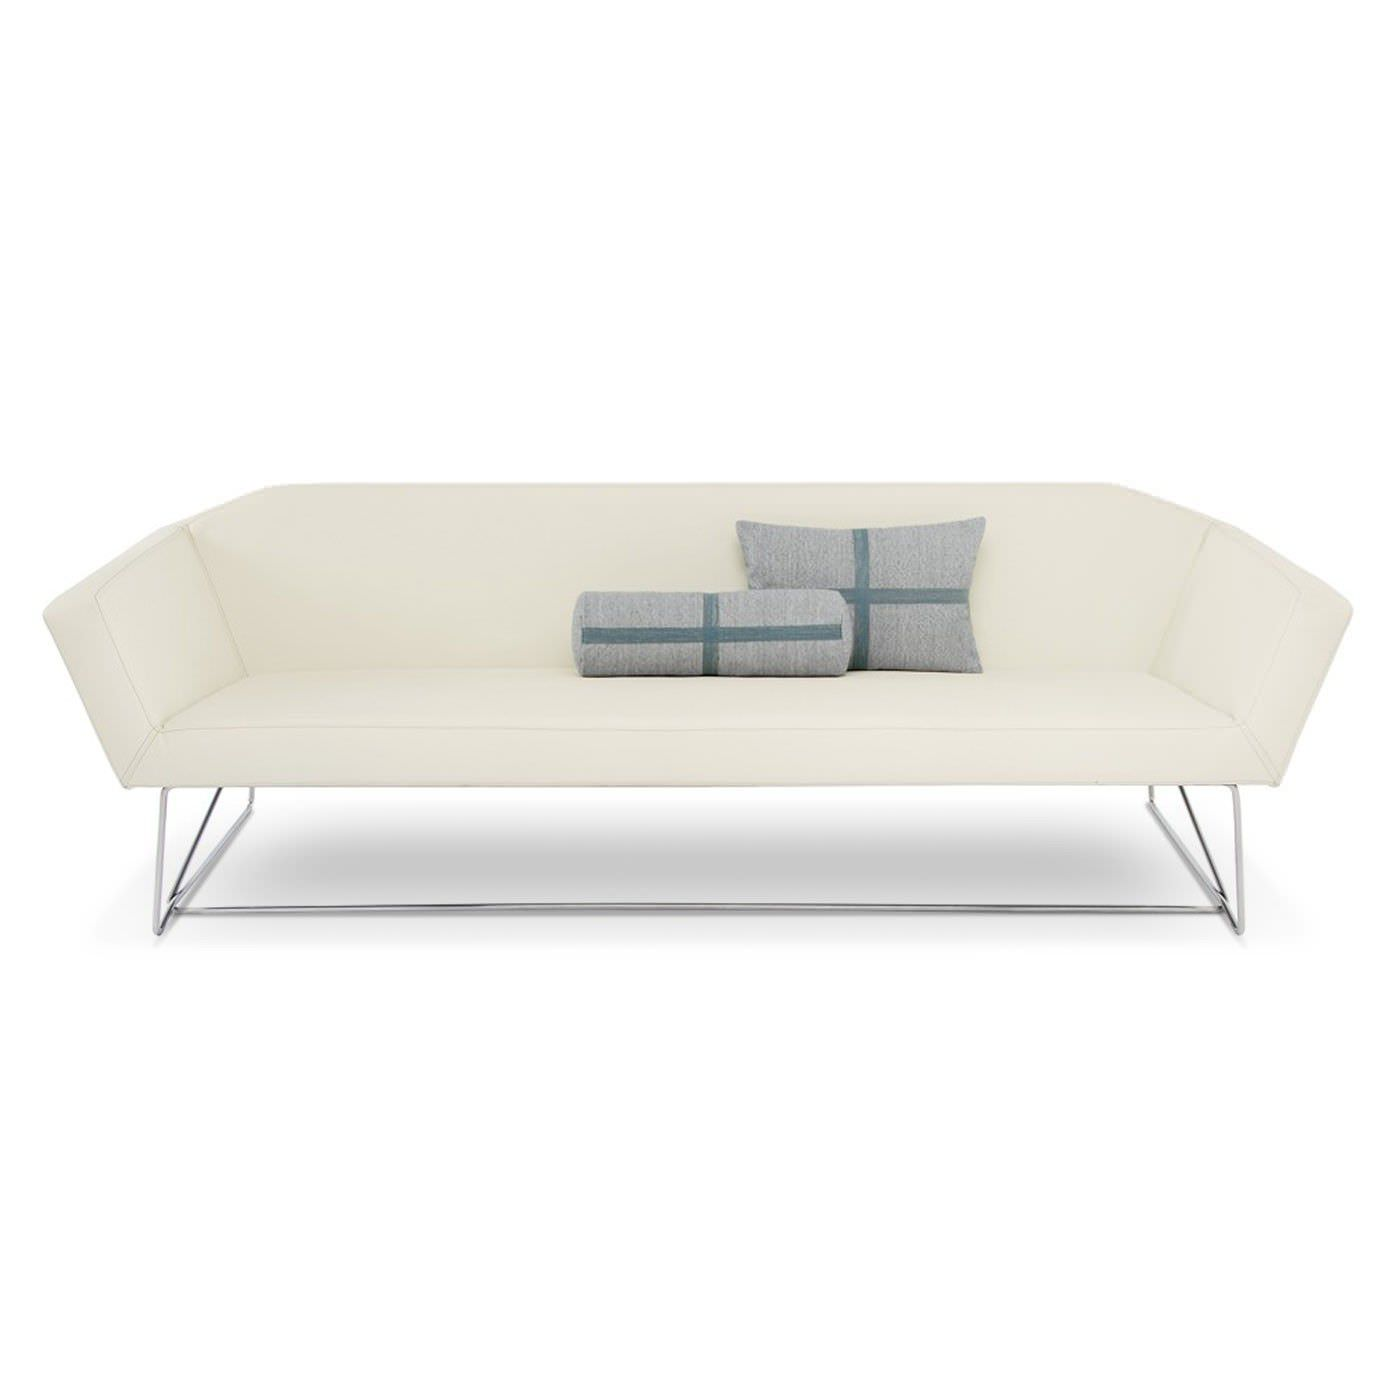 contemporary sofa / leather / stainless steel / white